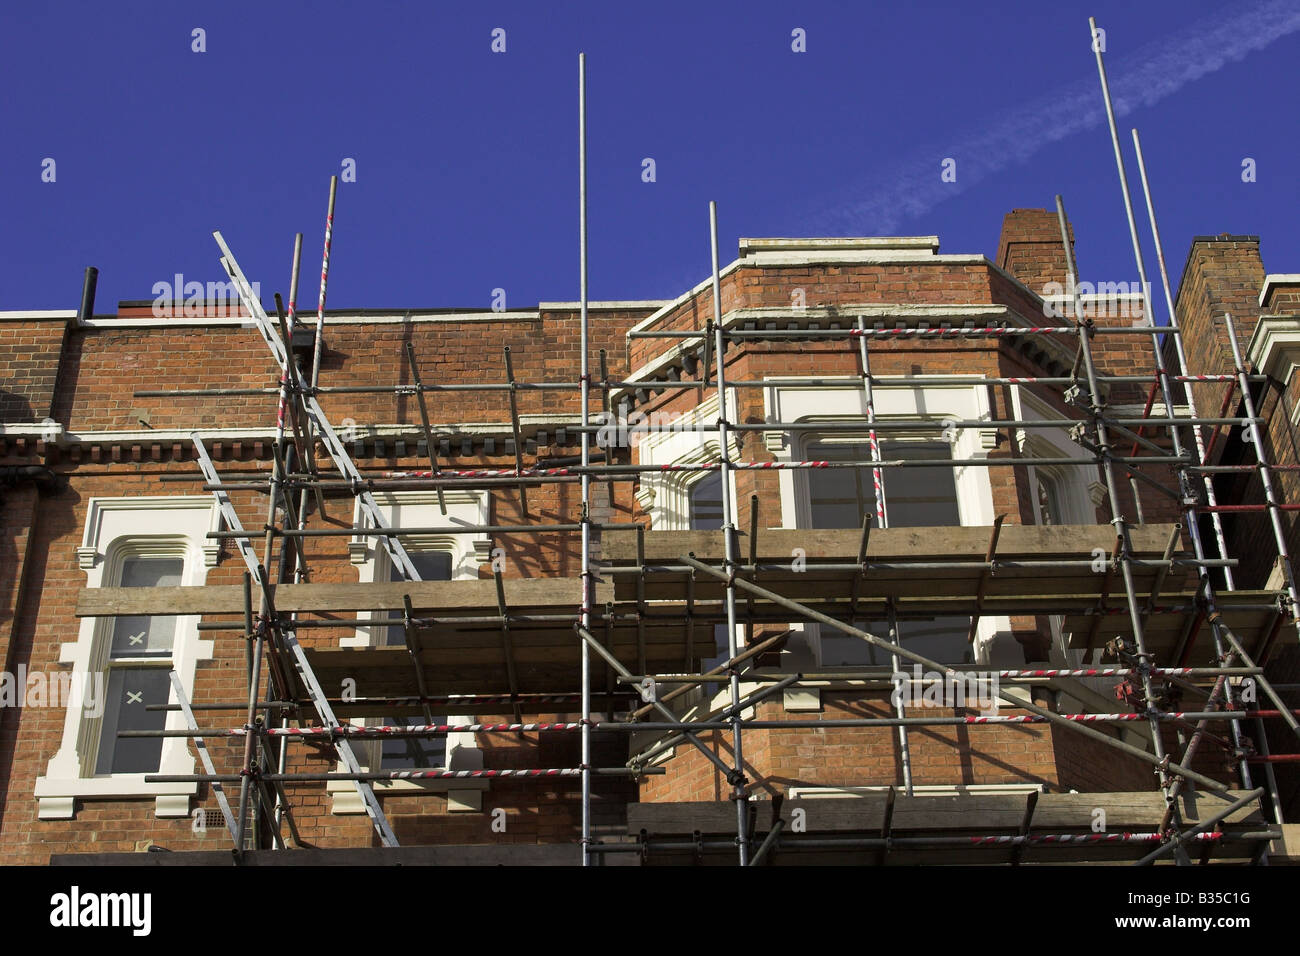 Scaffolding on a renovated house in a U.K. city. - Stock Image